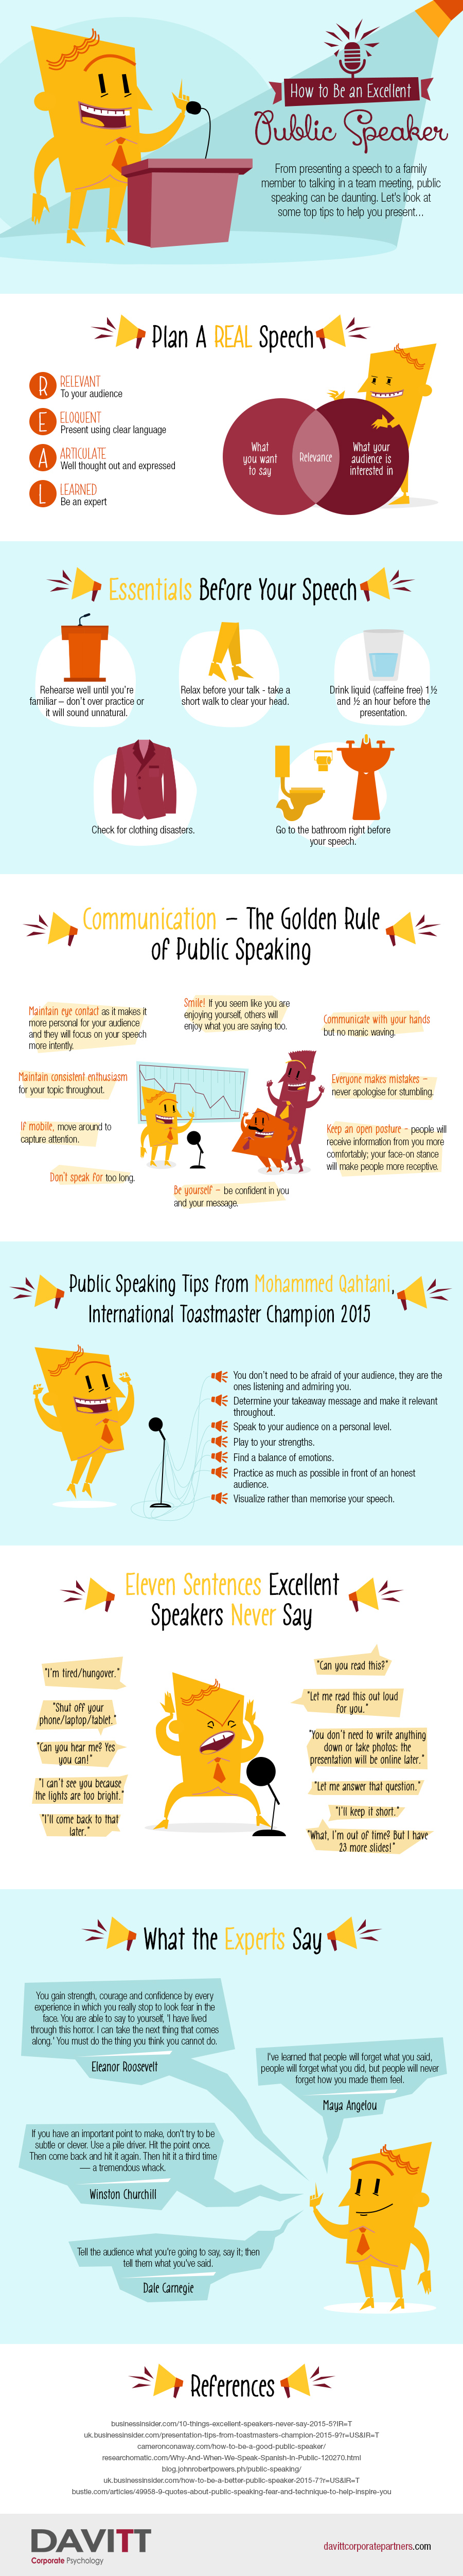 How to be an excellent public speaker infographic